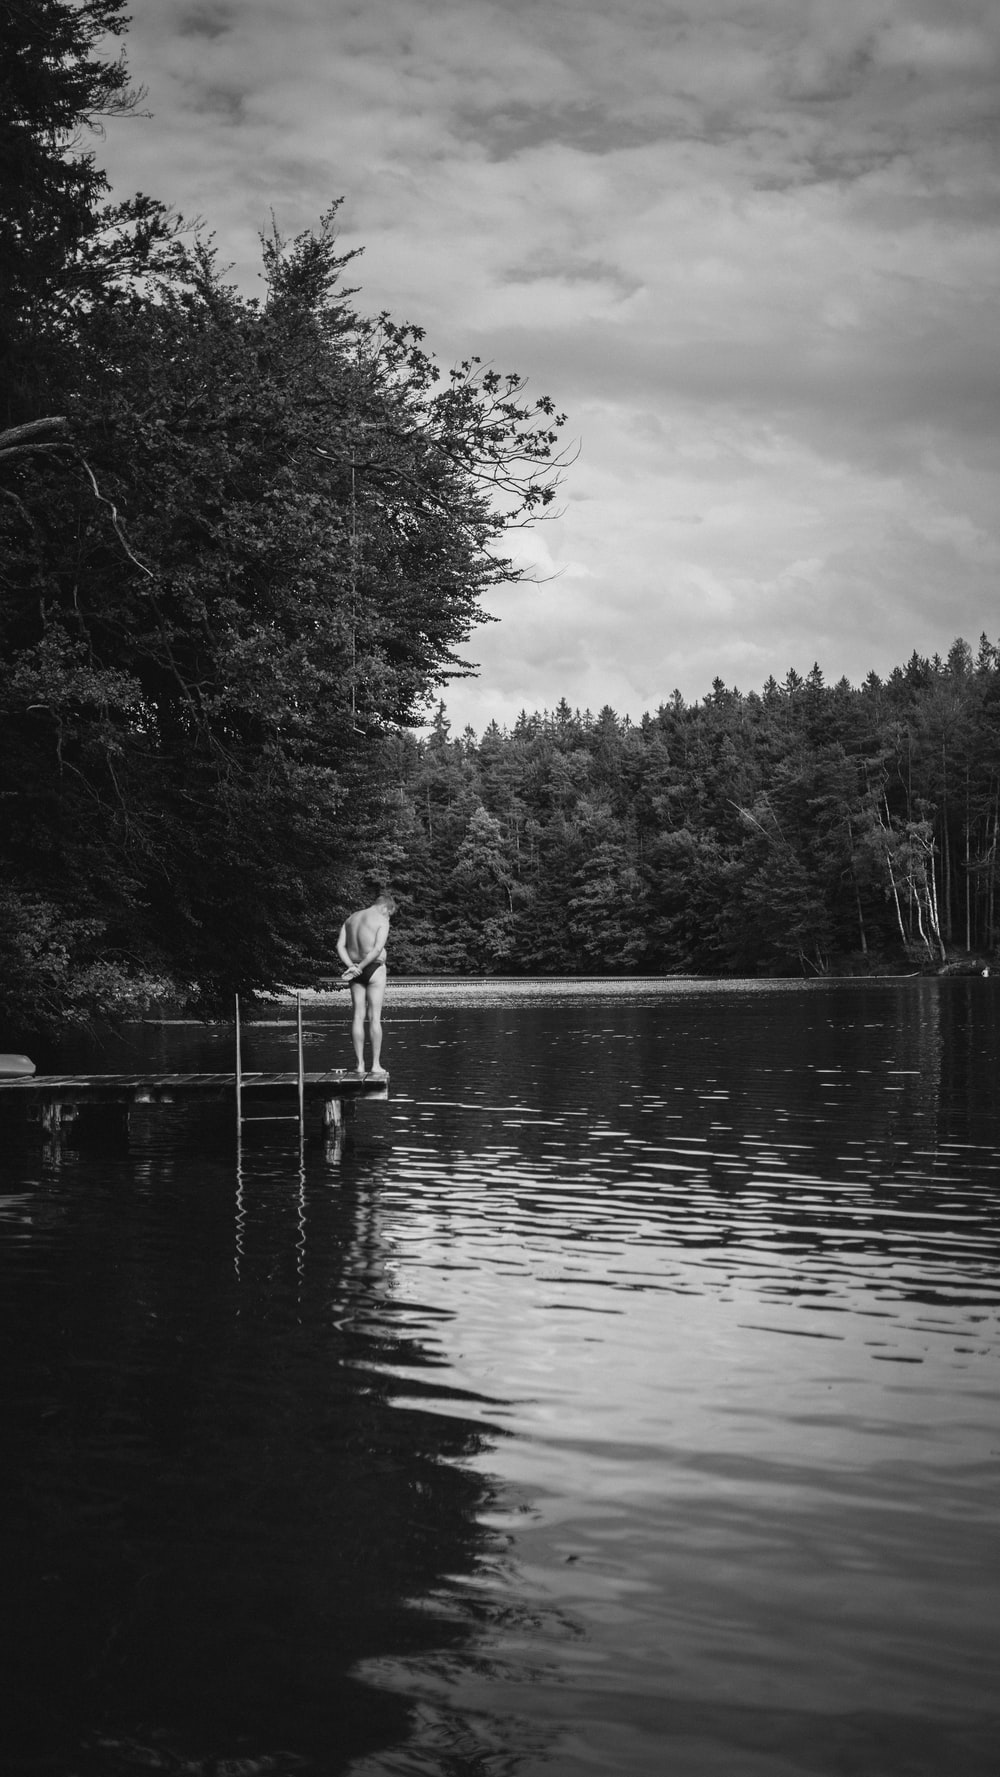 grayscale photo of trees near body of water under cloudy sky